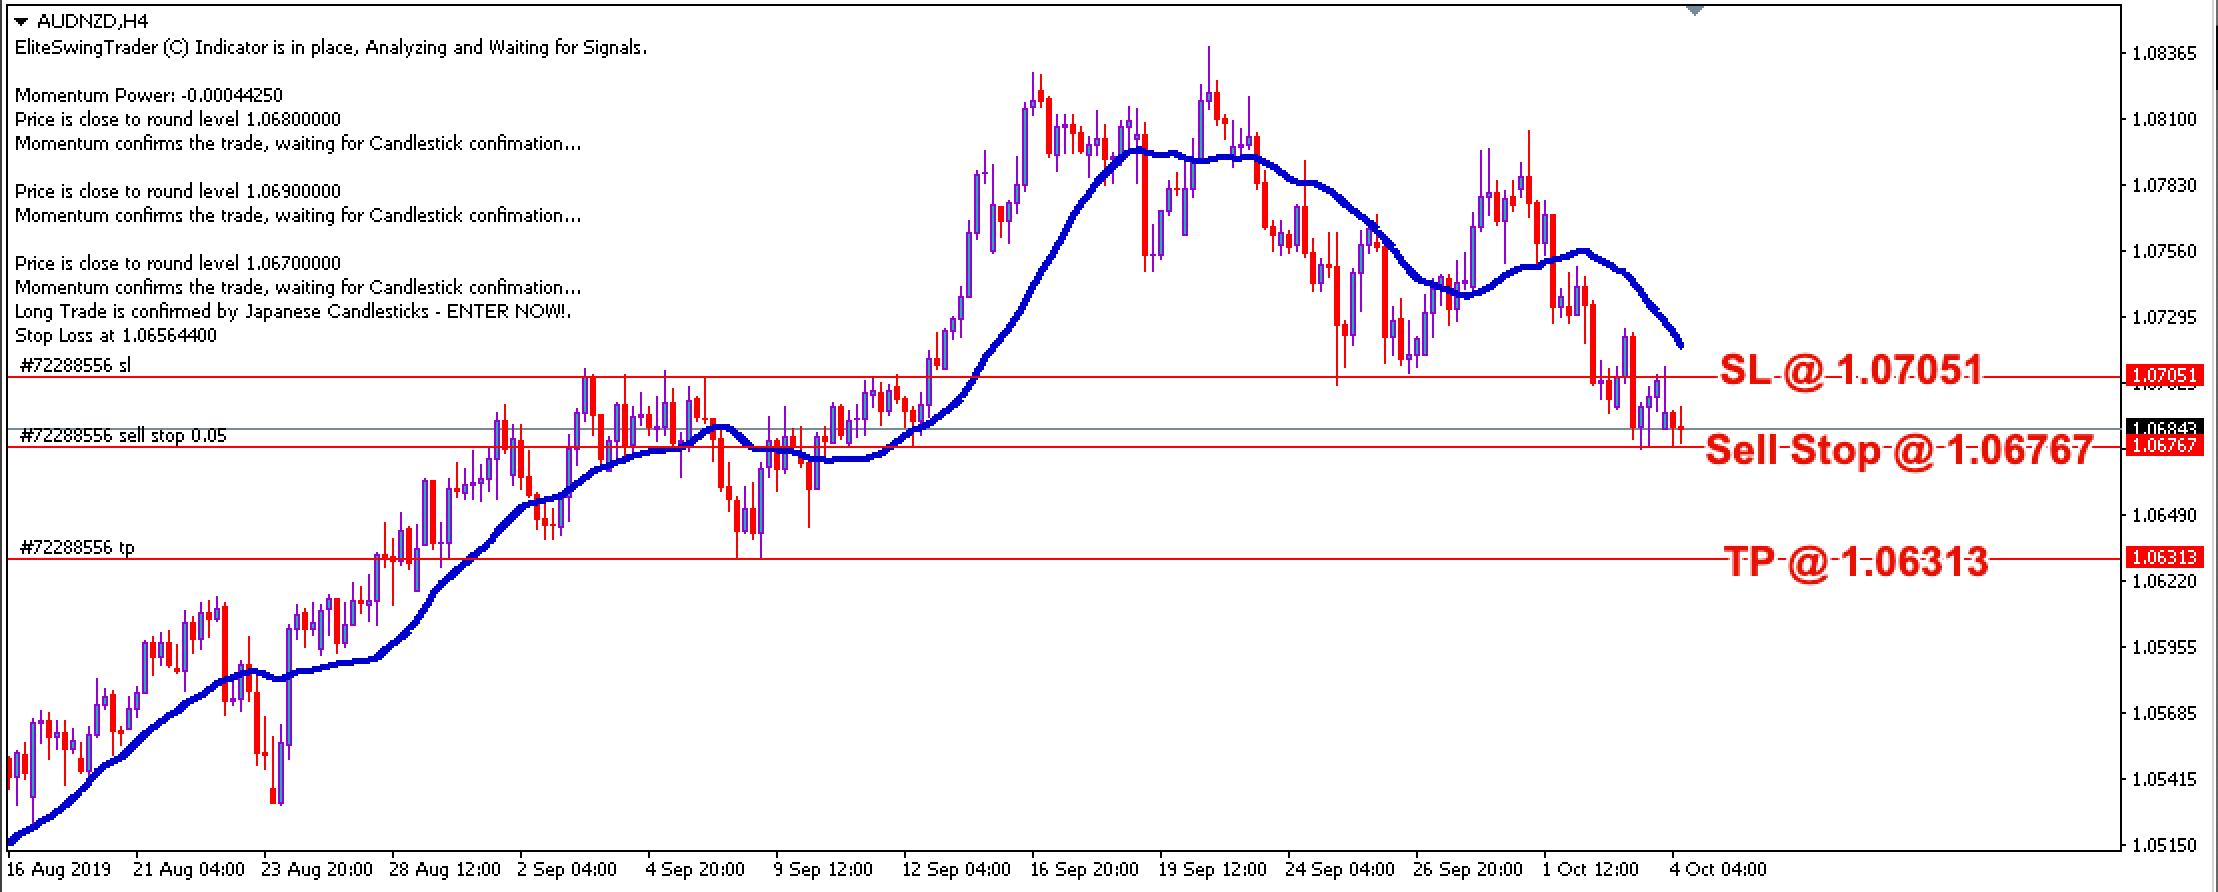 Free Forex Trade Signals AUDNZD – 4th Oct 2019